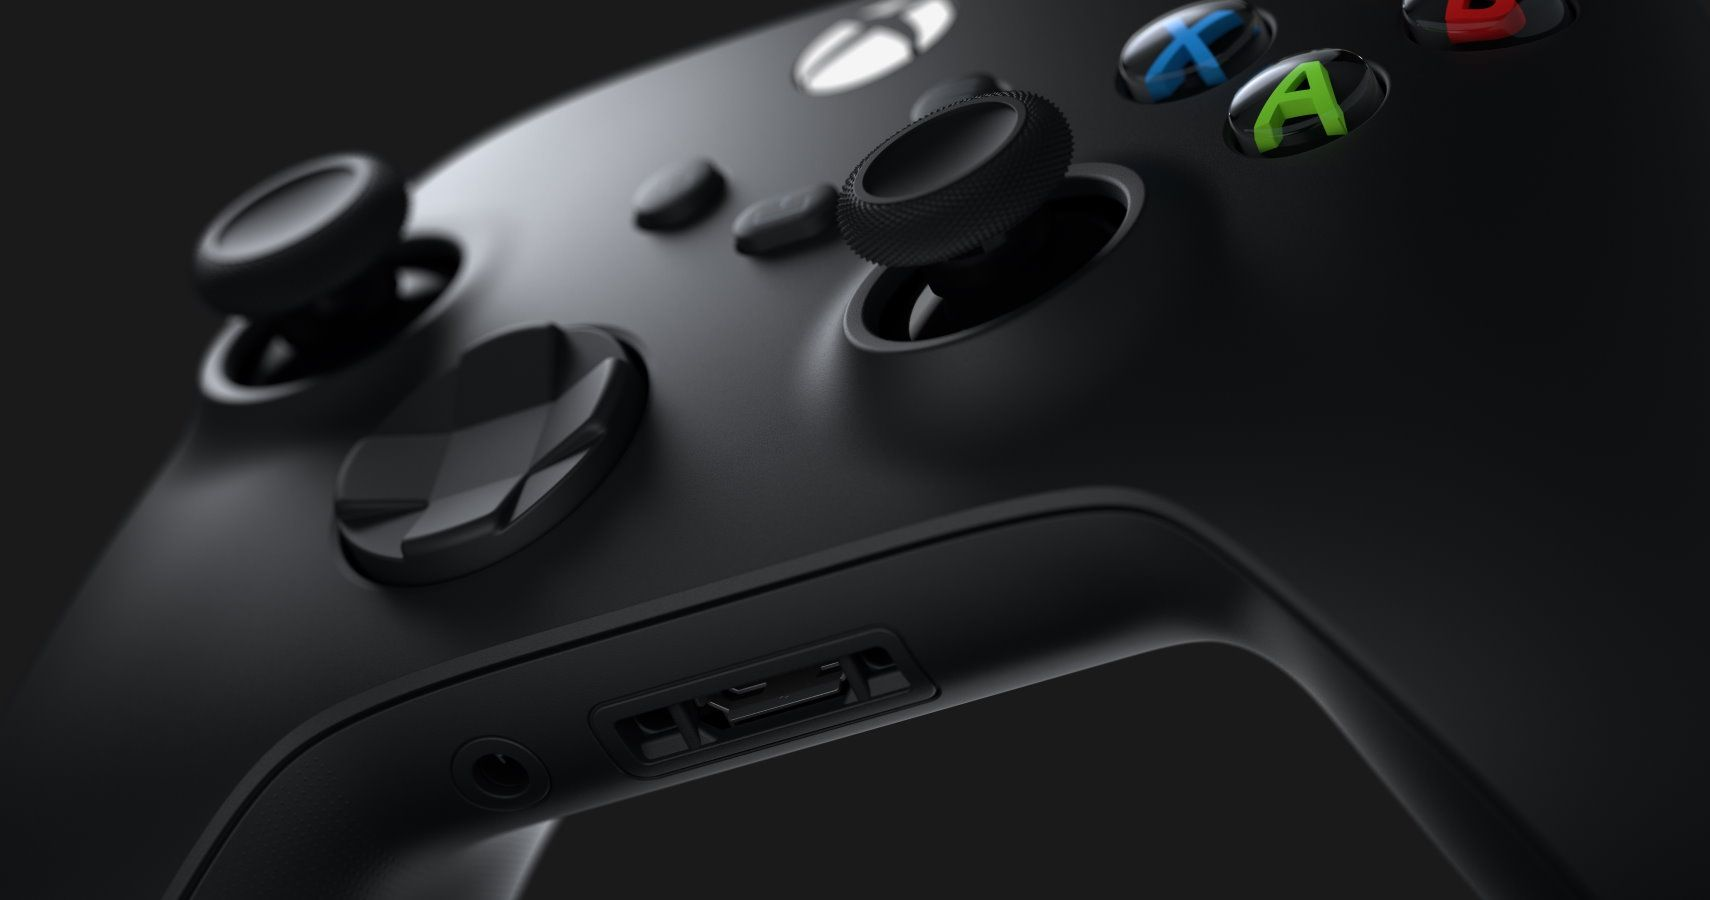 Microsoft Wants To Know If Xbox Gamers Wish Their Controller Was More Like Sony's DualSense